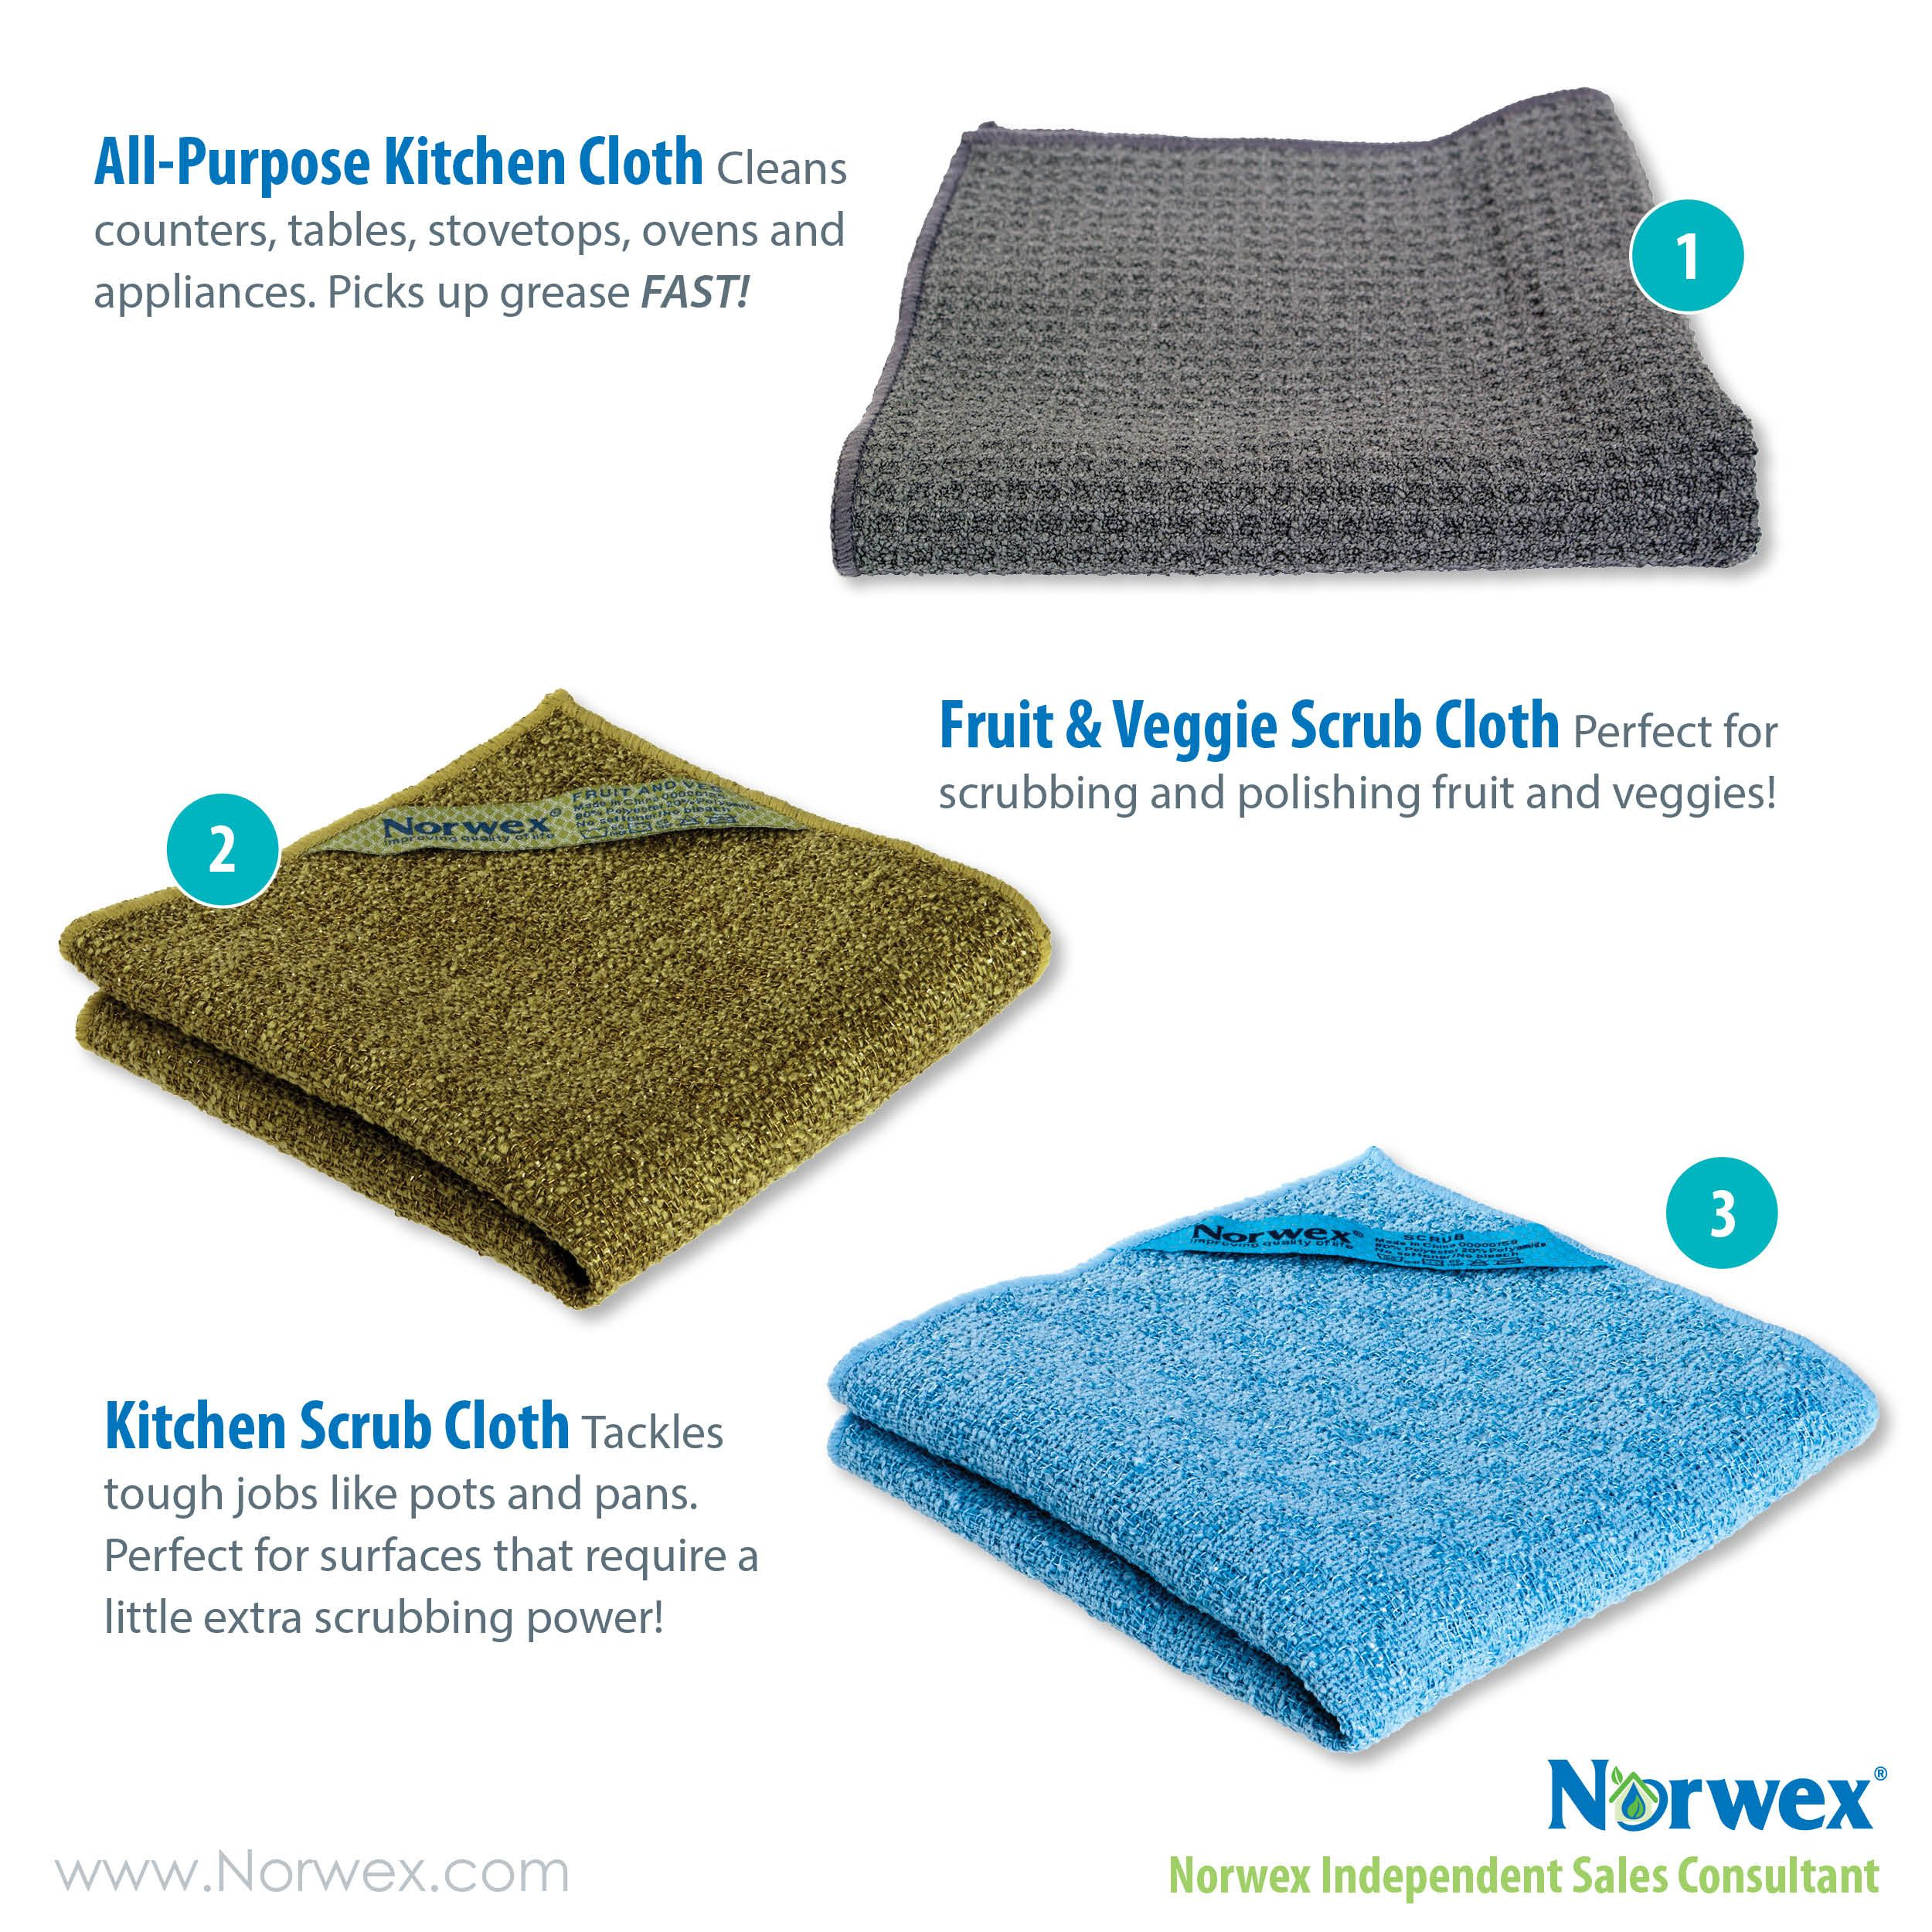 Norwex Cleaning Products: For Your Facebook Events, Online Parties And Selling